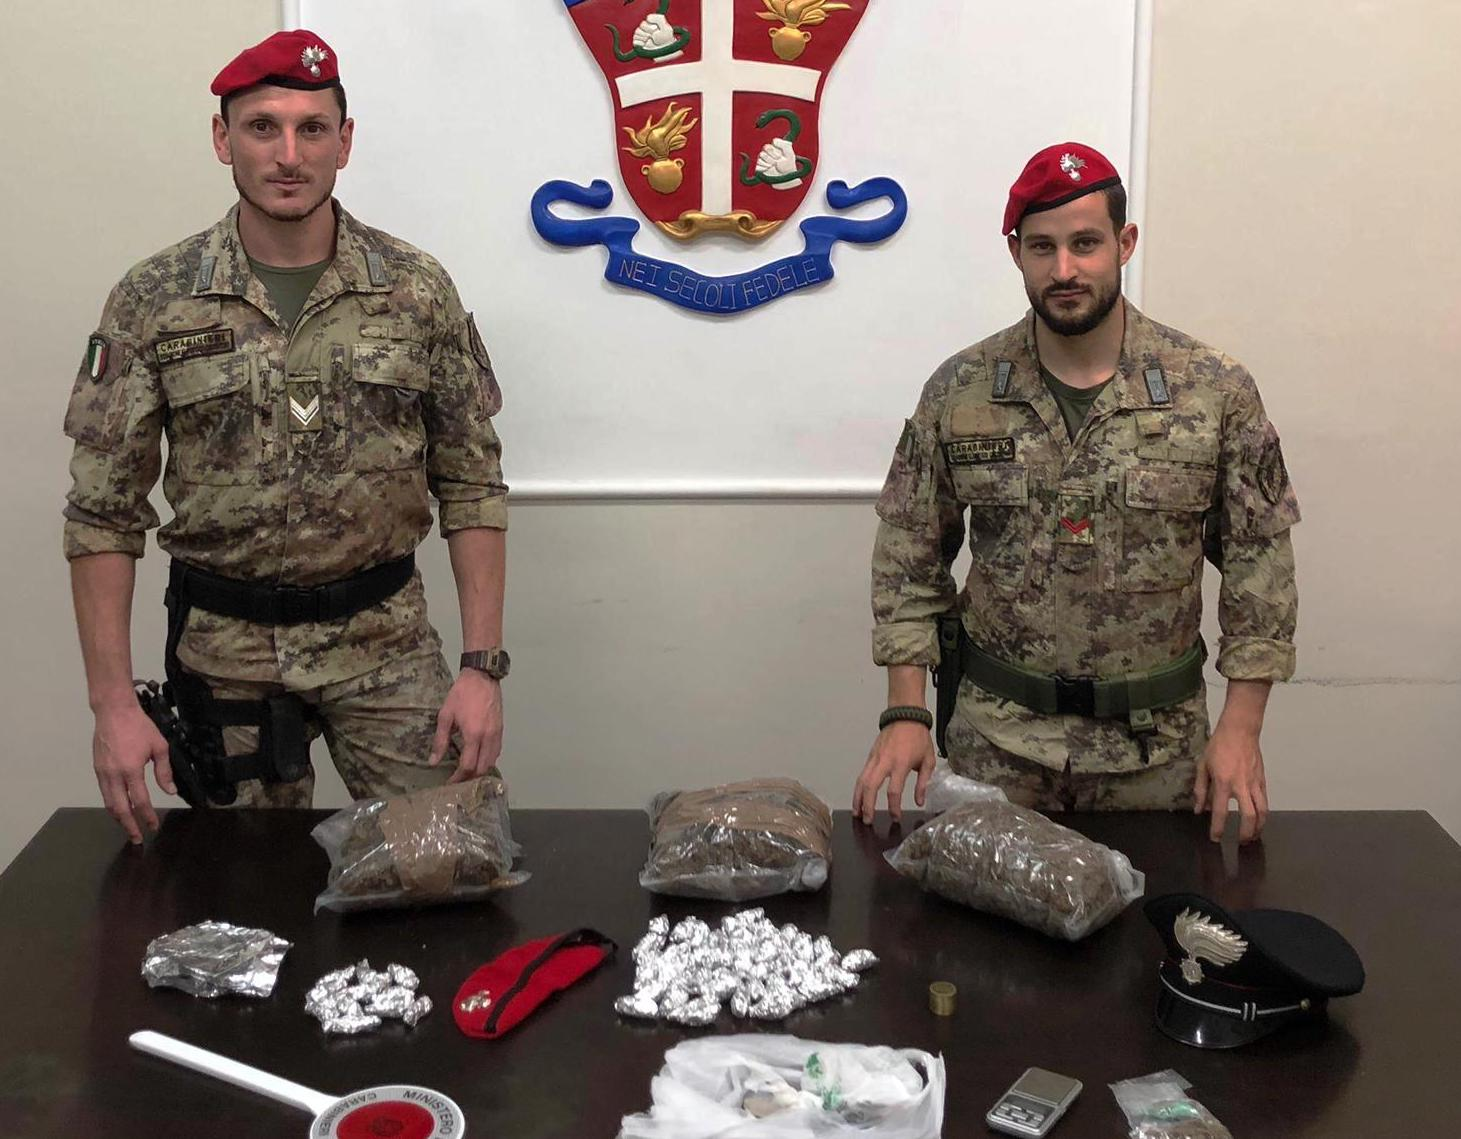 Sequestrata a Paternò 1,6 chili di marijuana: arrestato un ucraino